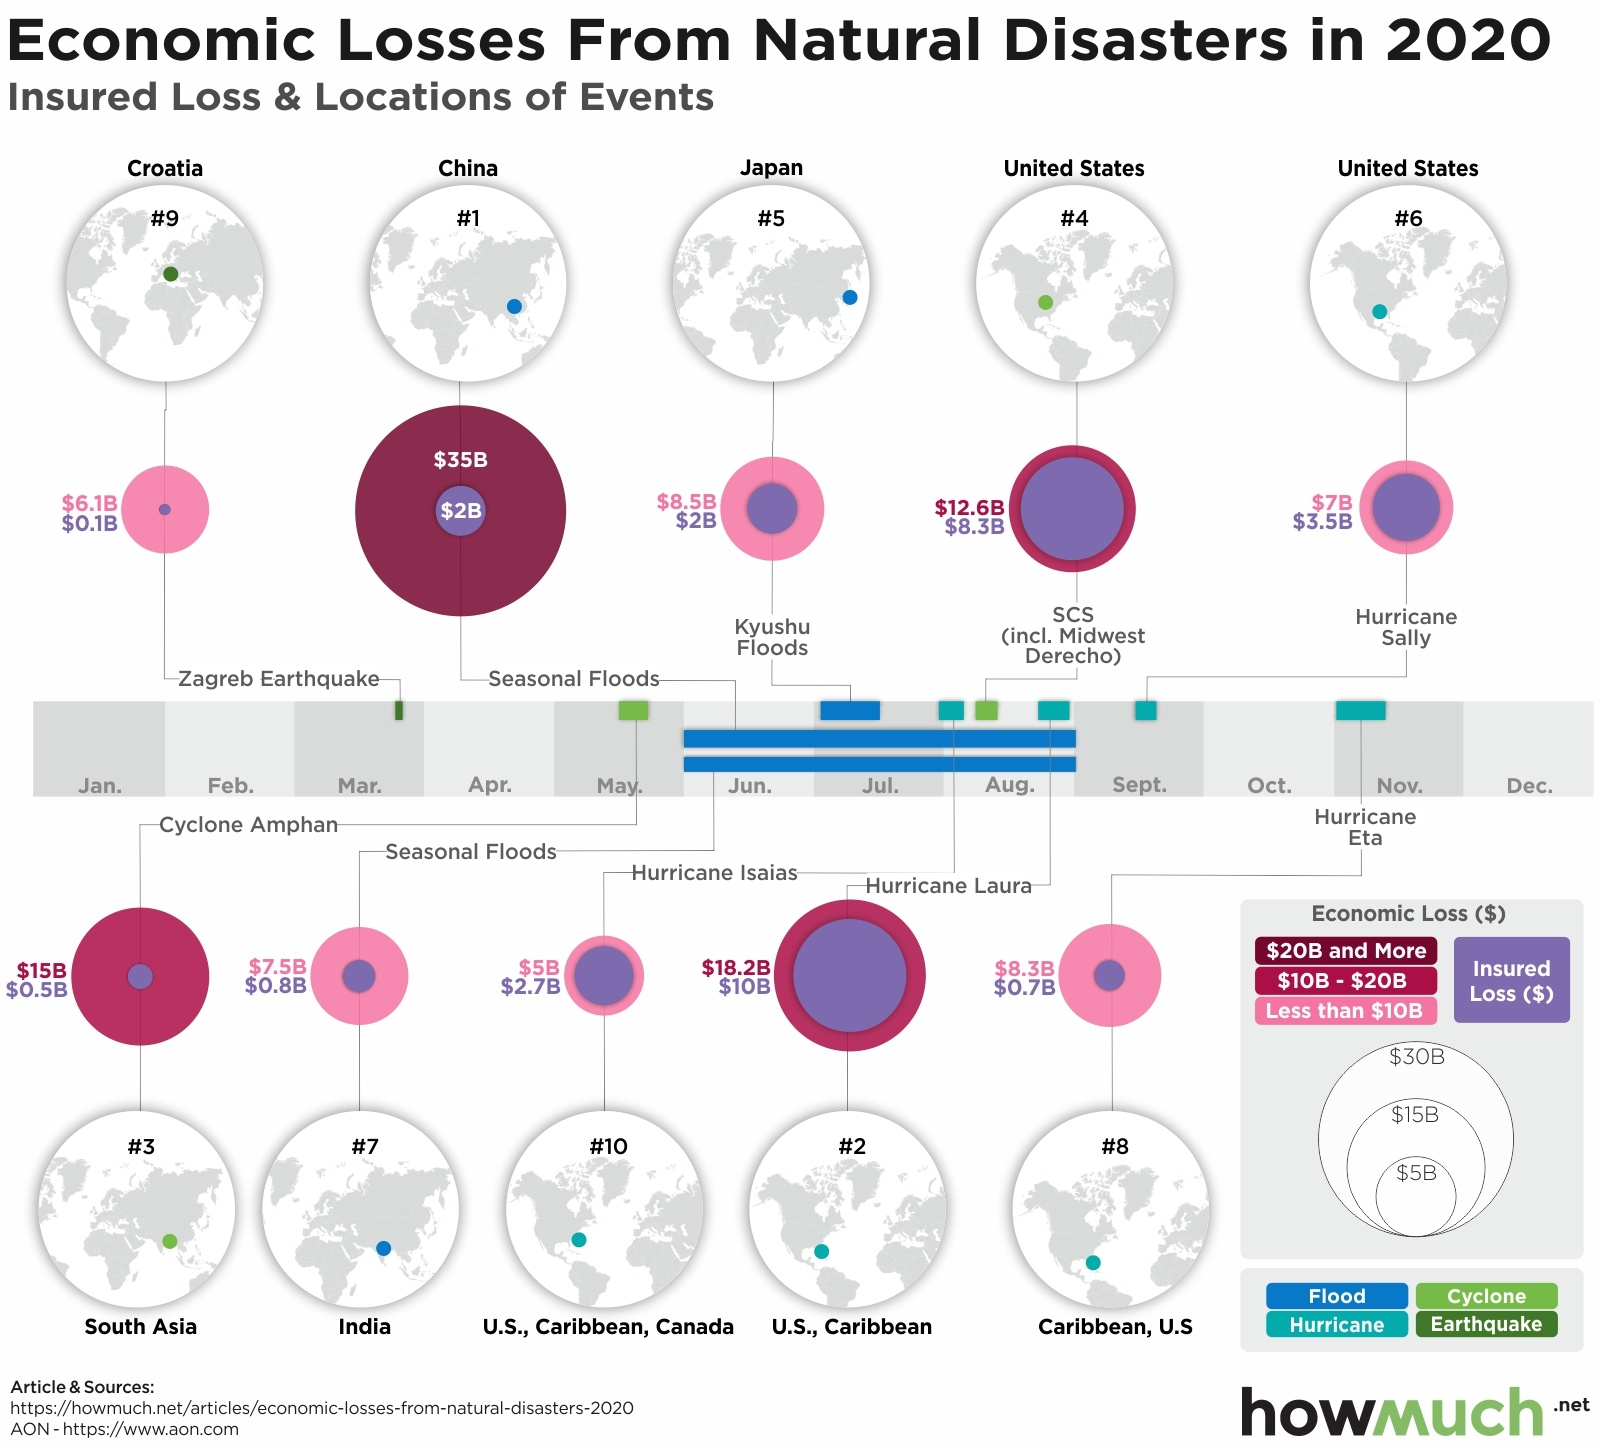 Economic impact of the natural disasters